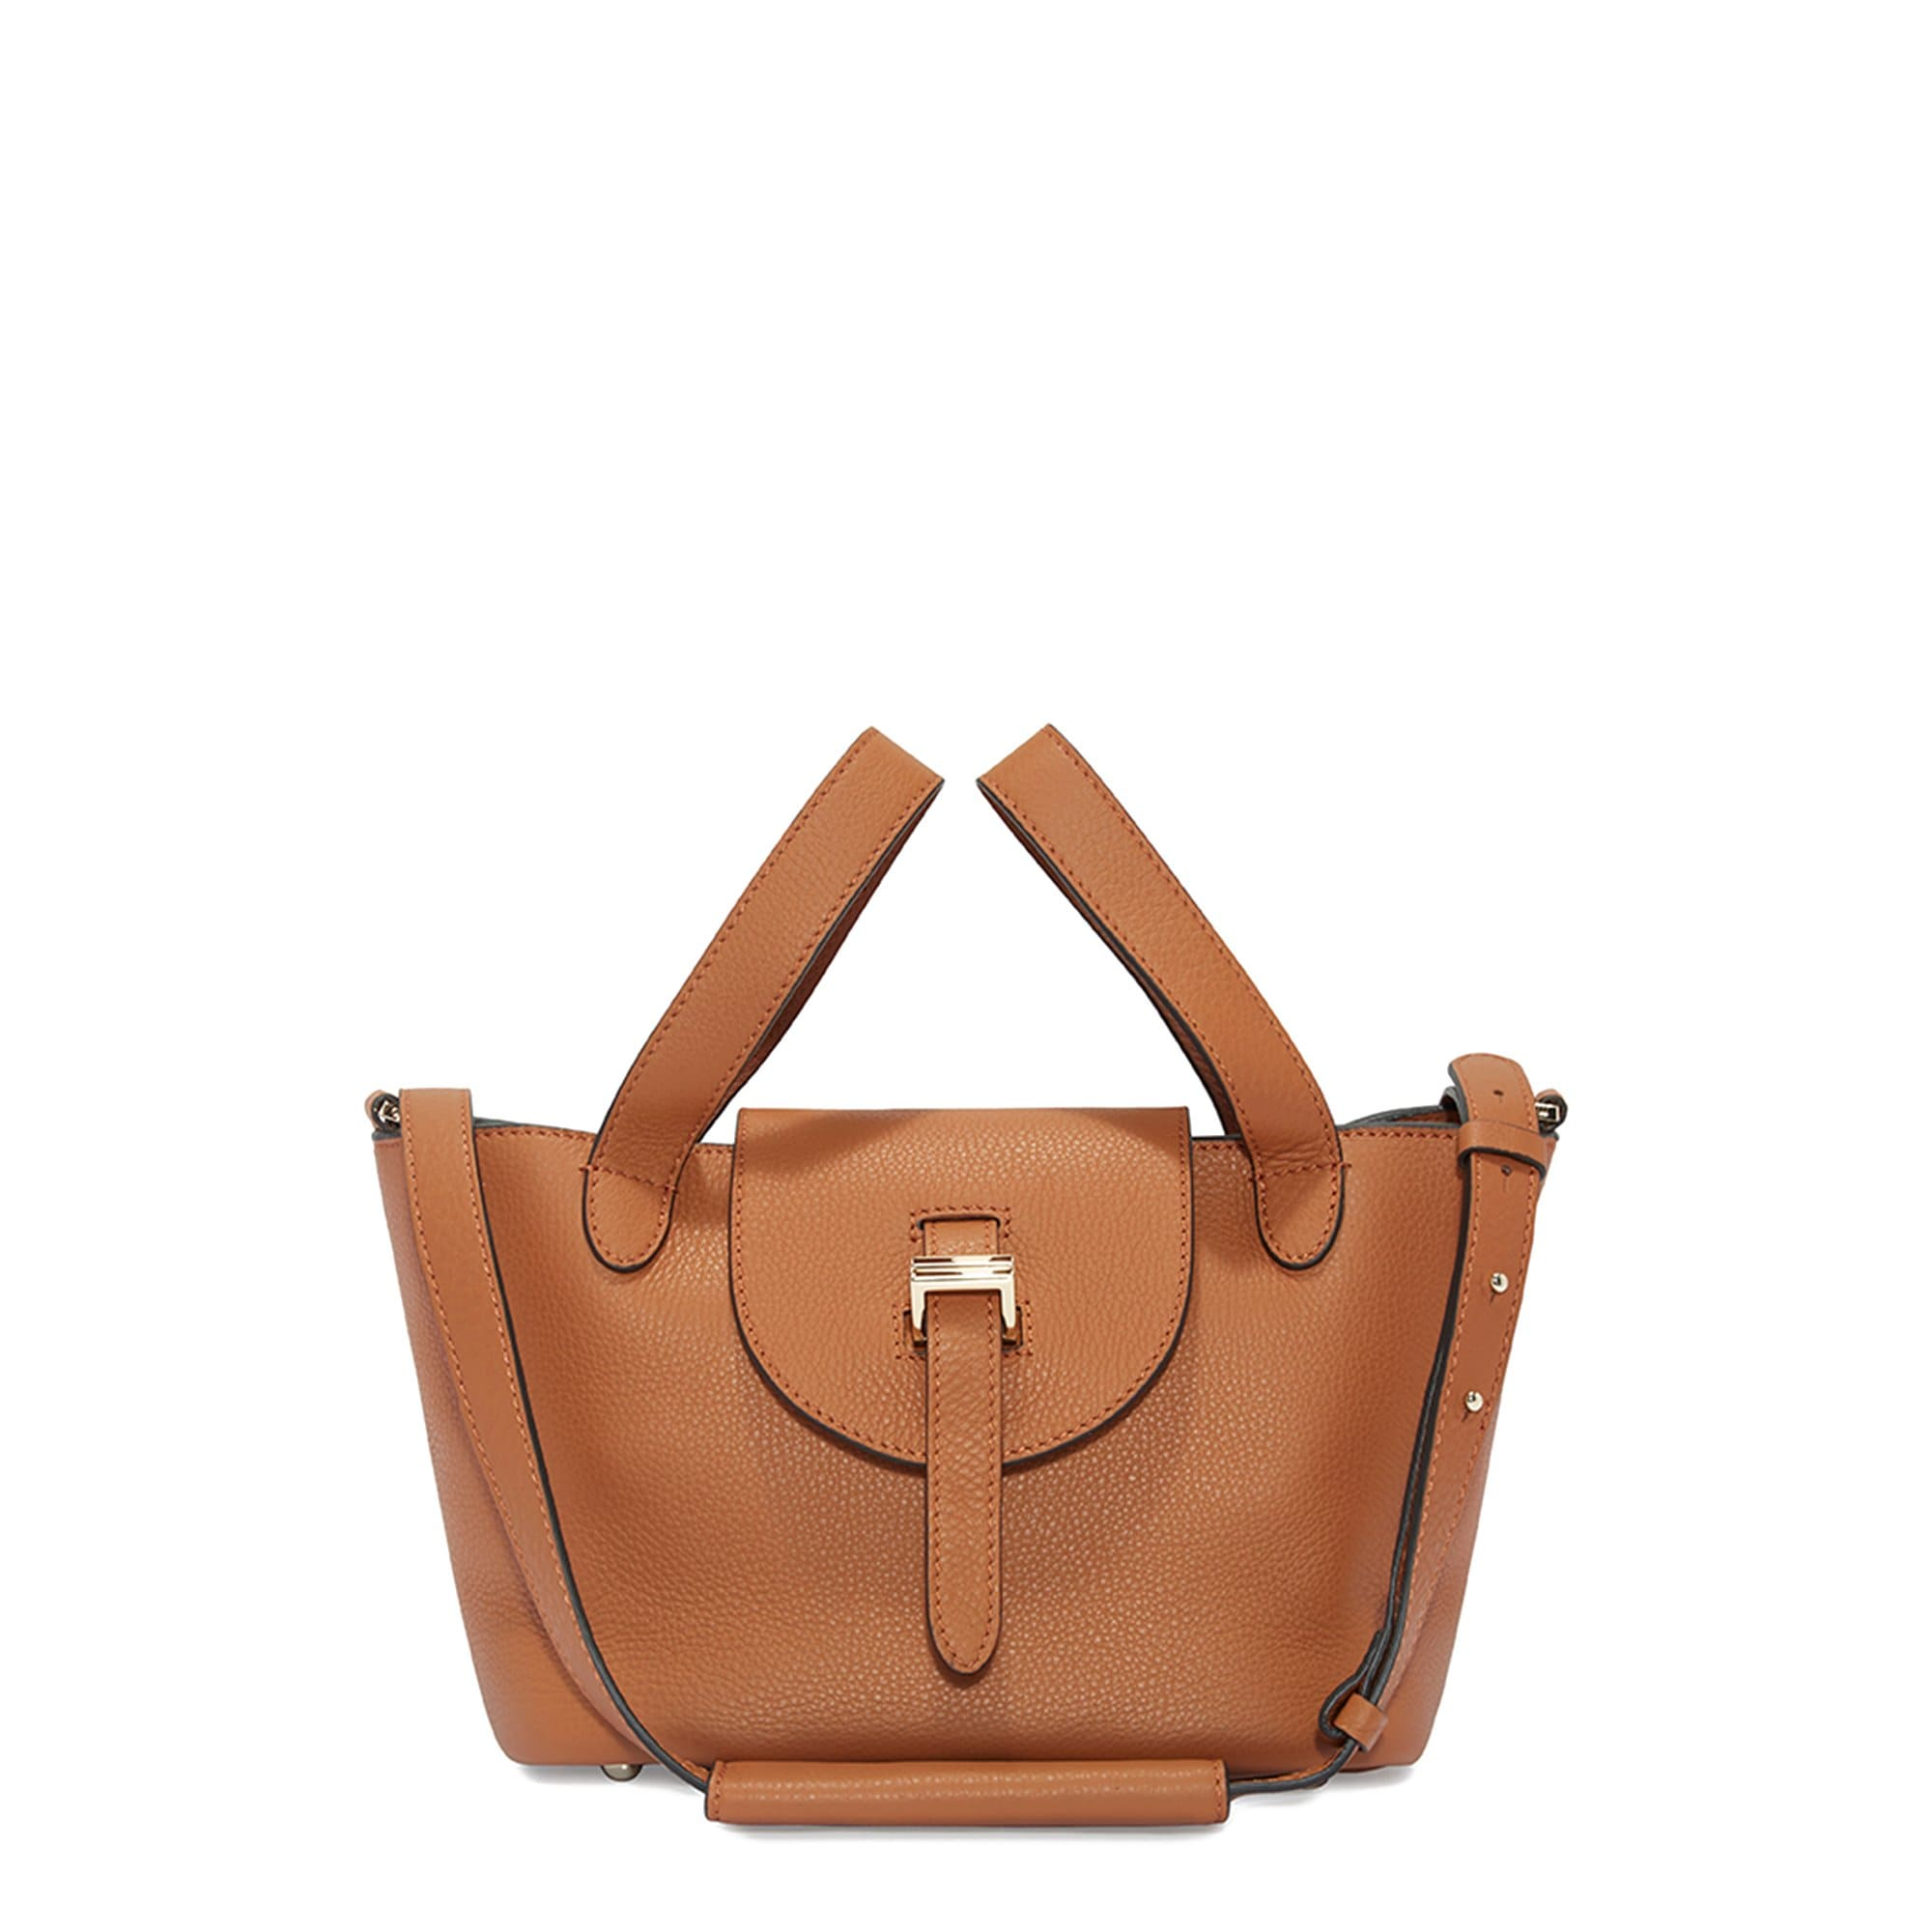 Thela Mini | Tote Bag | Tan